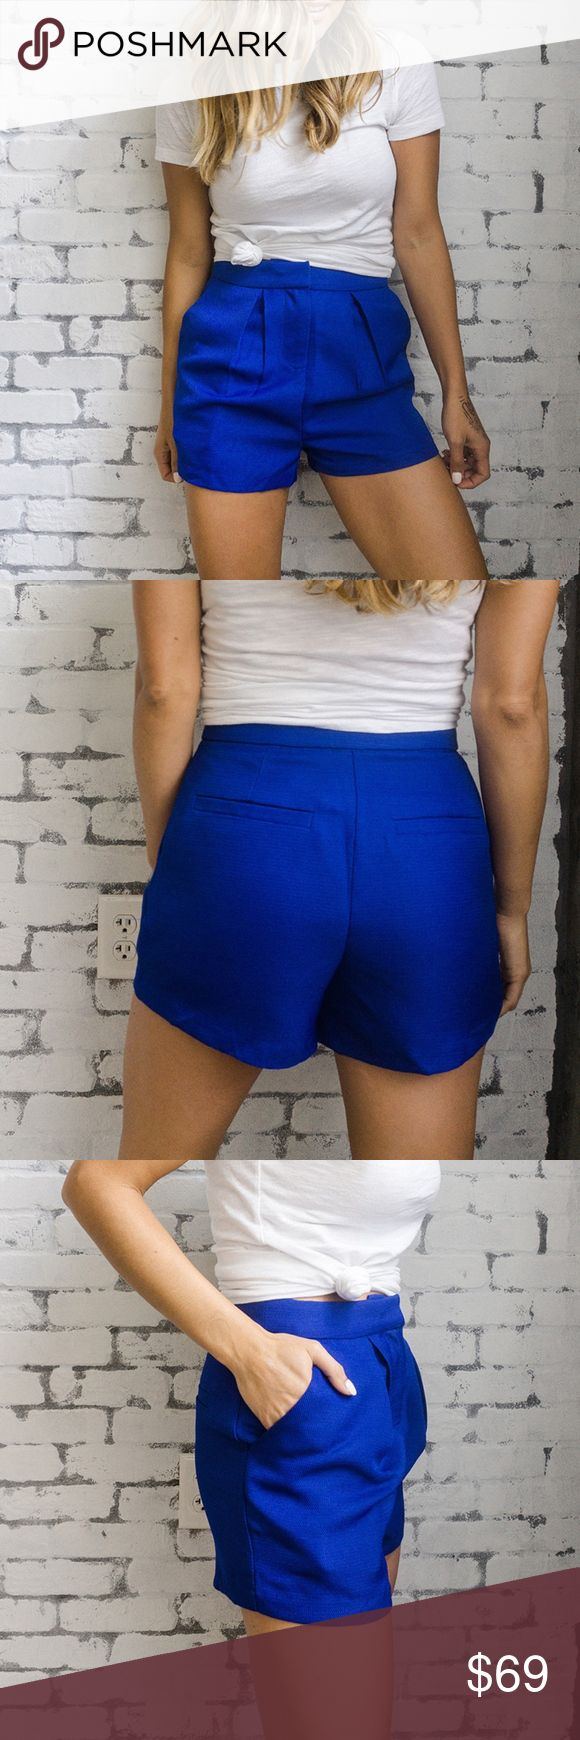 "English Factory Cobalt blue shorts These beautiful cobalt blue shorts are a bold but stunning.   Details and fit:  Self: 100% Polyester  Lining: 100% Polyester Inseam: 2"" Hand wash, line dry. Imported. Fits true to size, wearing an XS English Factory Shorts"